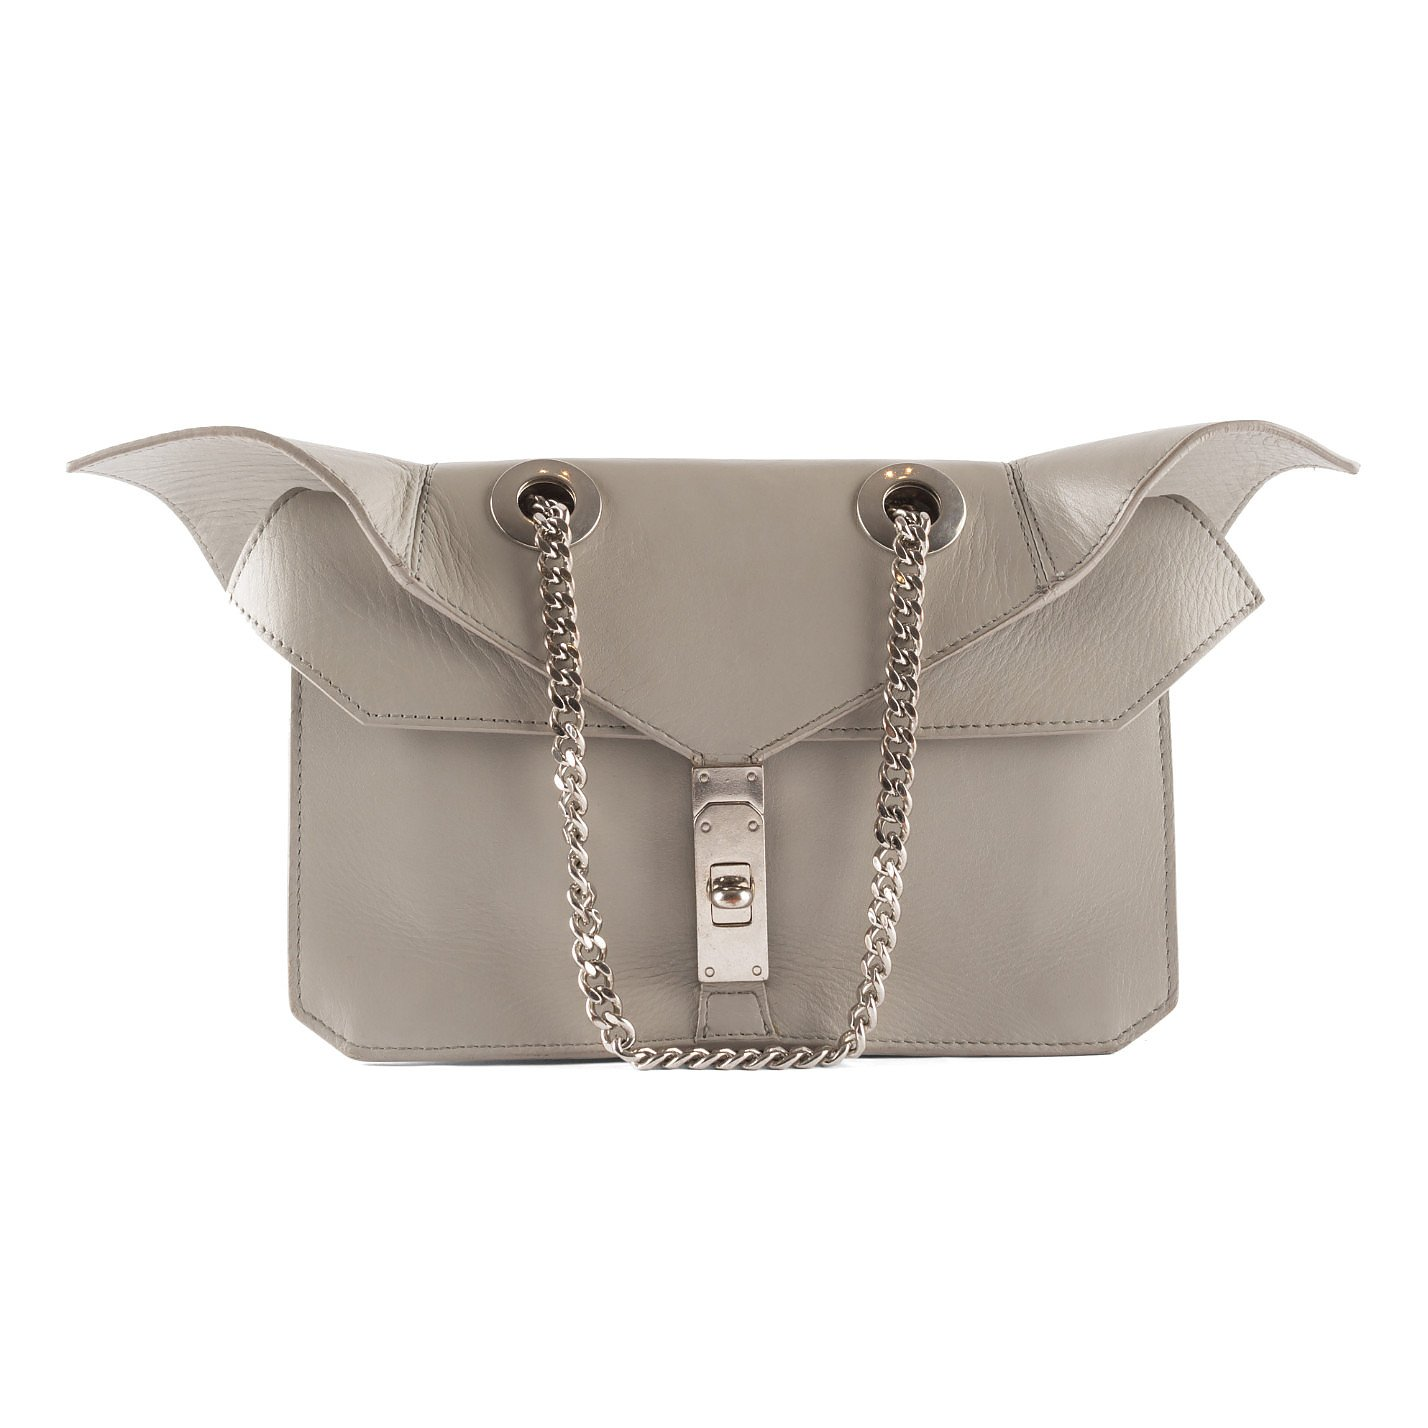 The Changing Factor Alien Clutch Bag